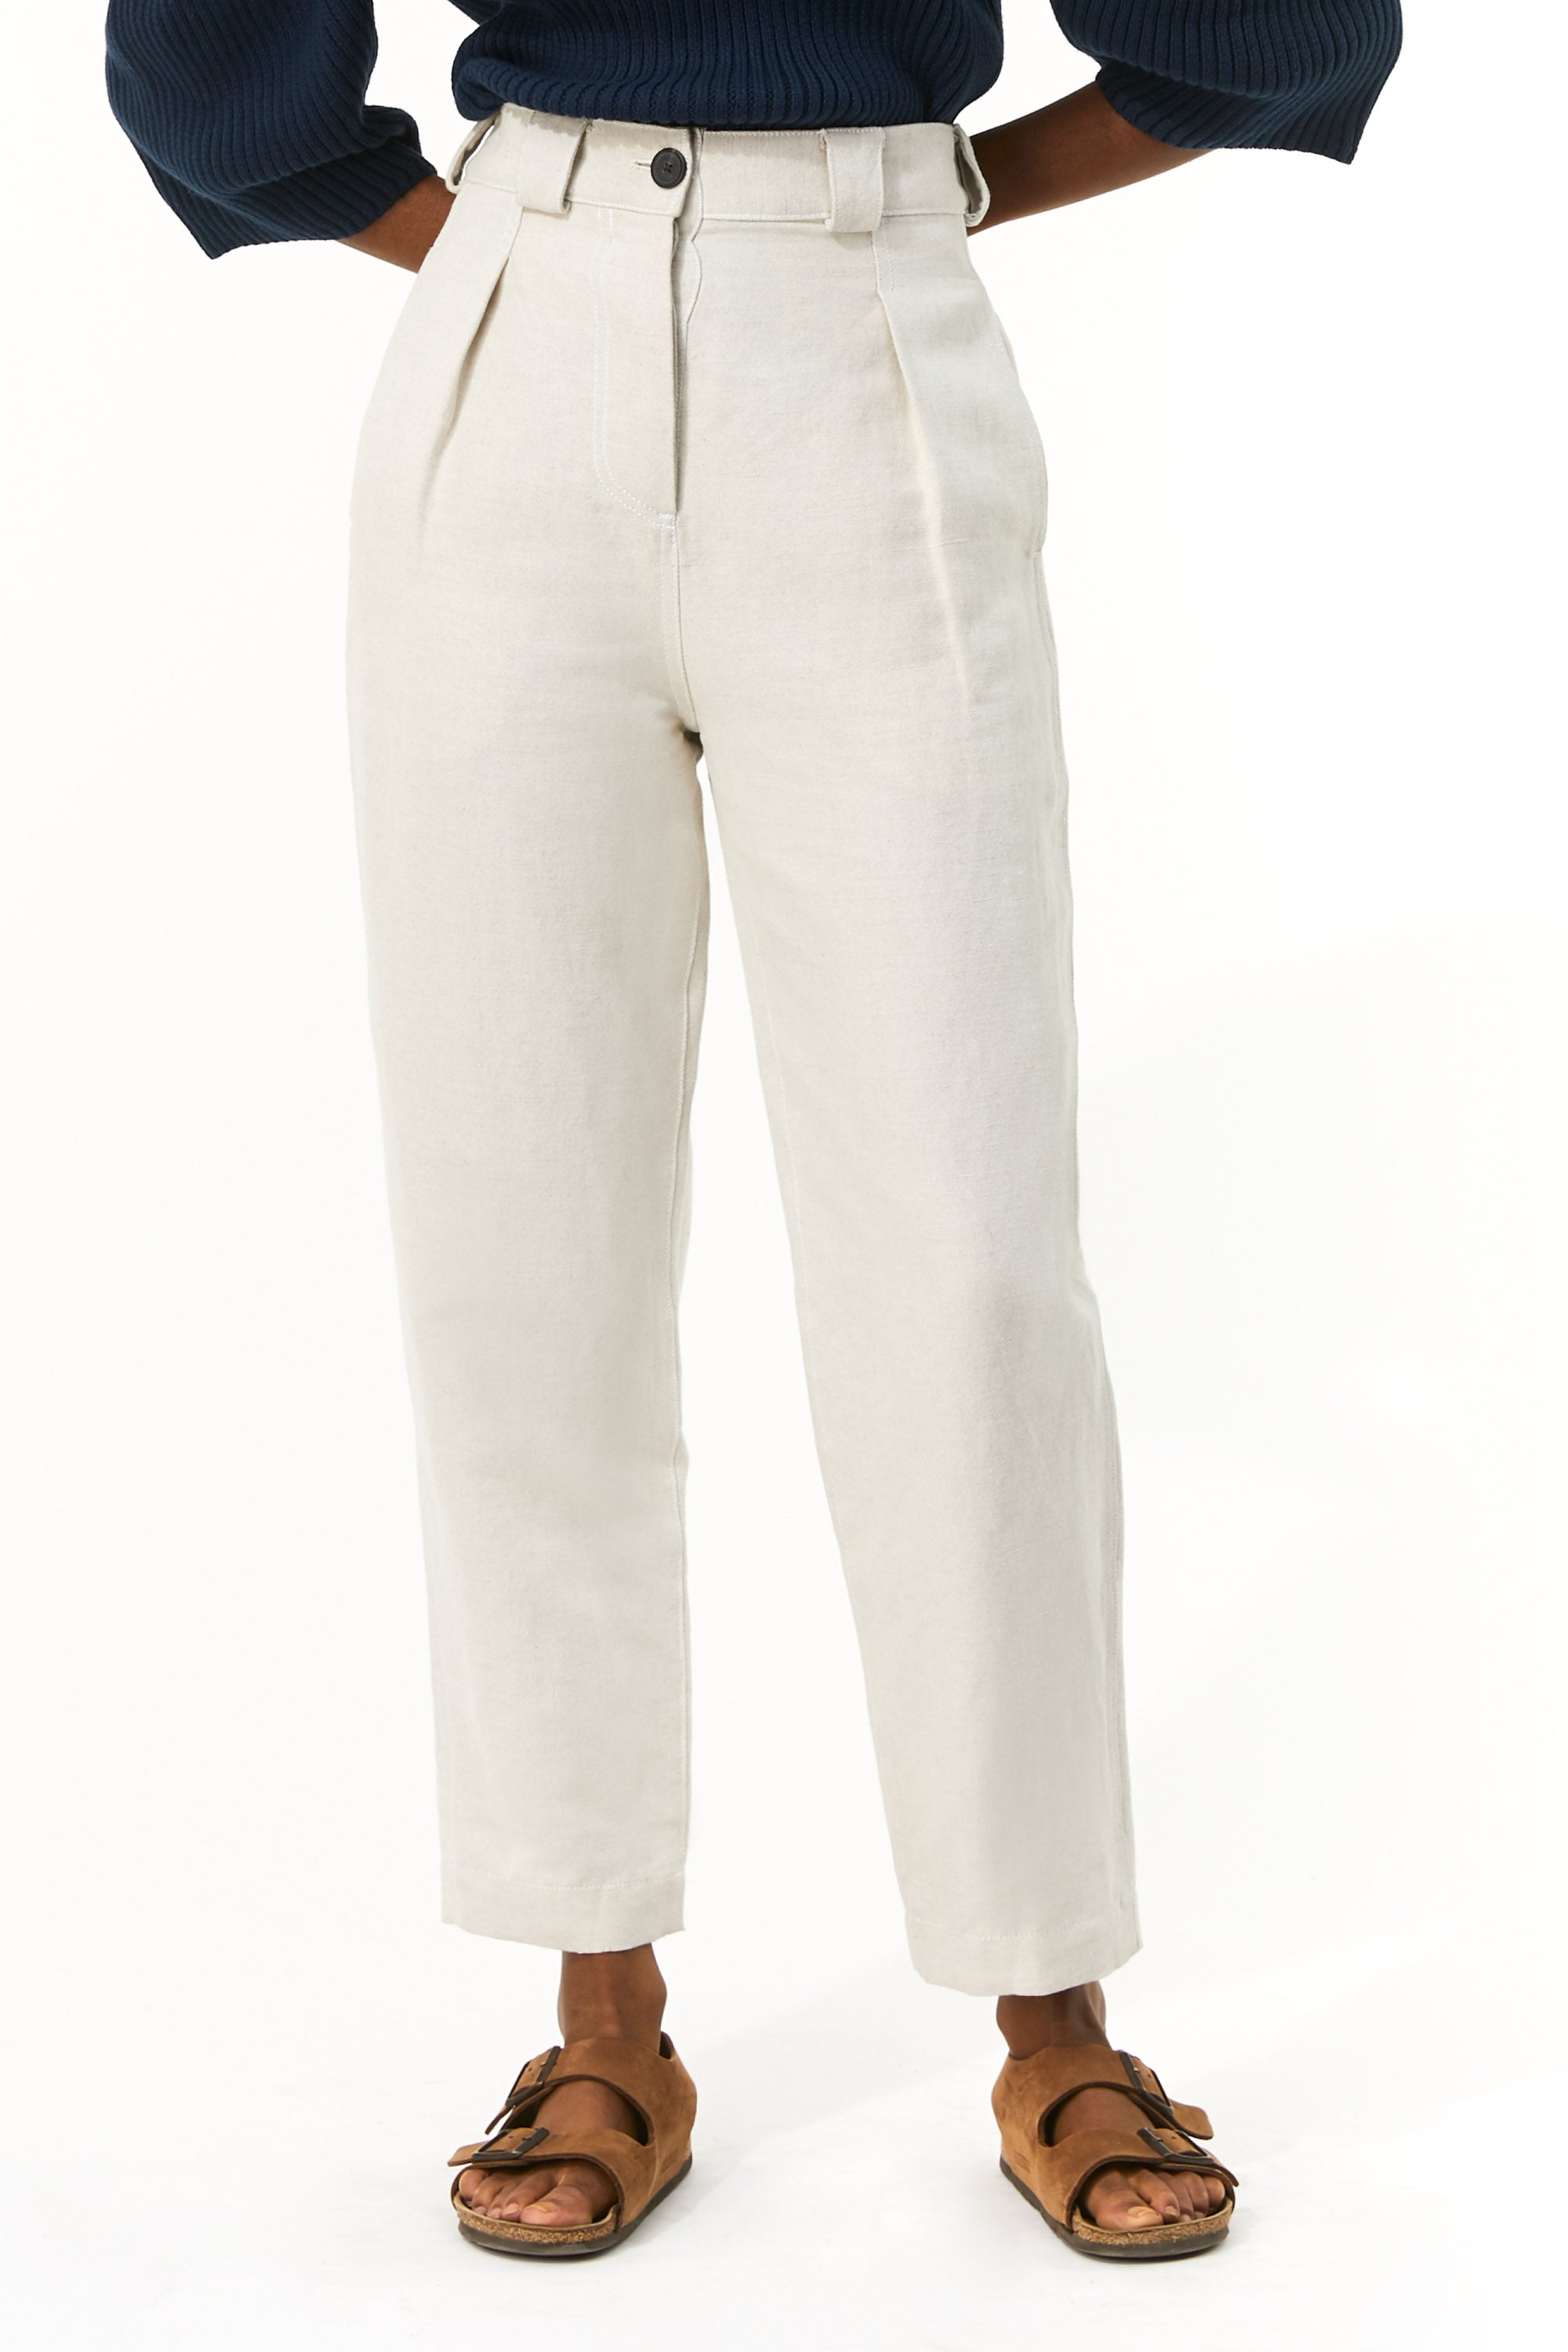 Mara Hoffman Beige Jade Pant in linen and organic cotton (front detail)